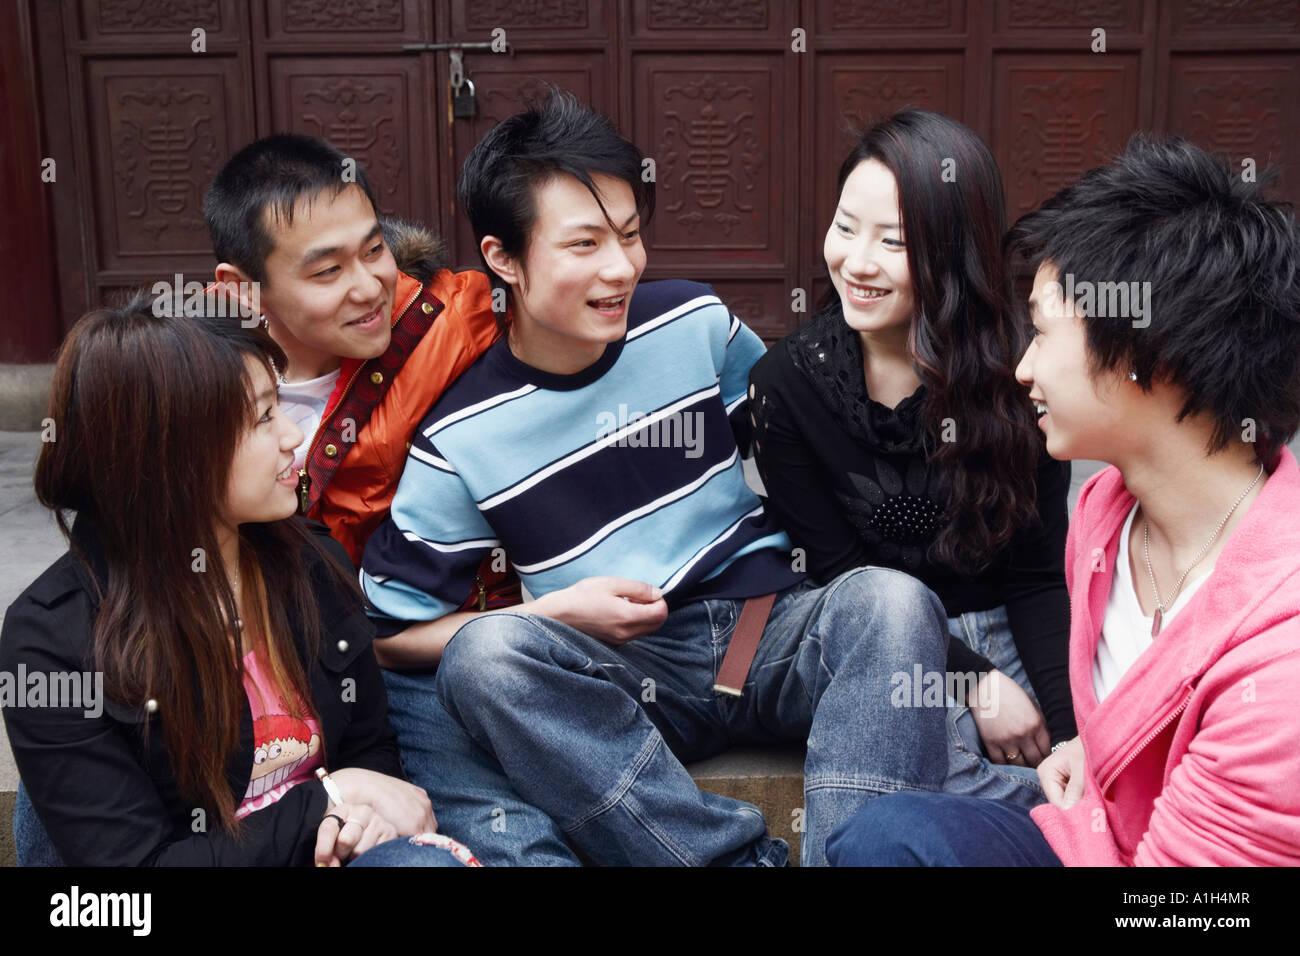 Two young men talking to two young women and a teenage boy Stock Photo